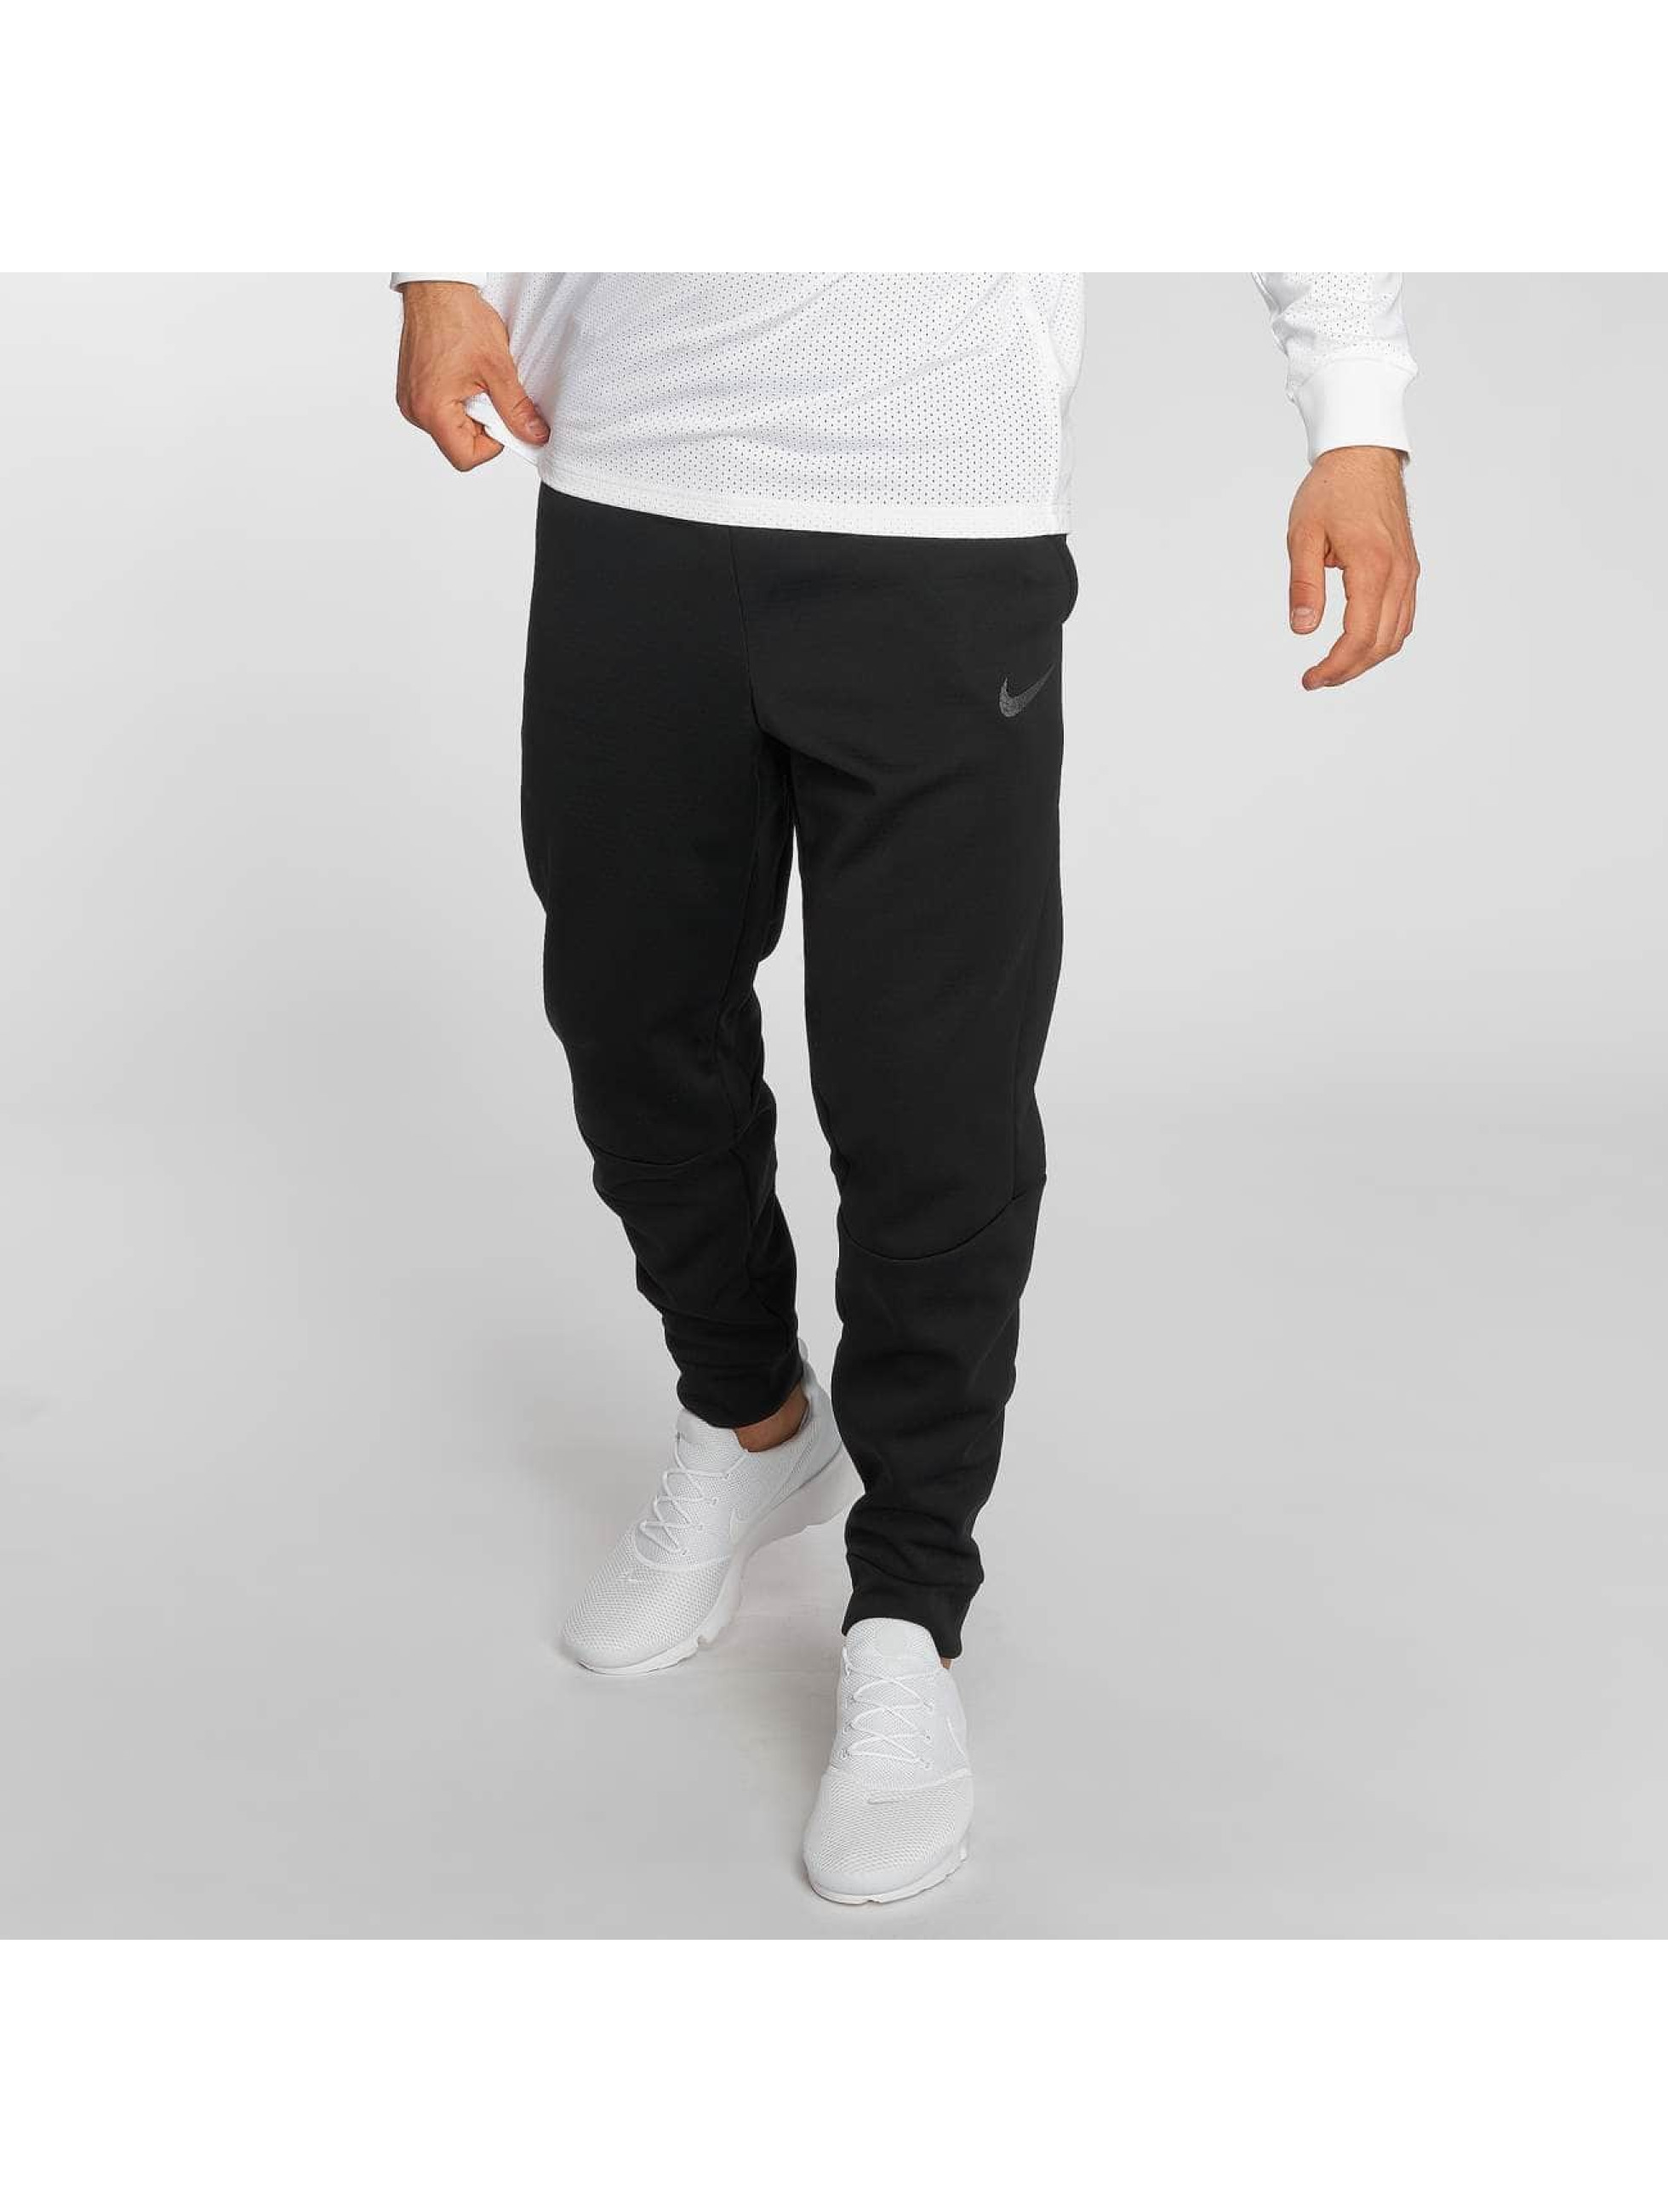 Nike Performance Jogginghose Therma Sphere schwarz